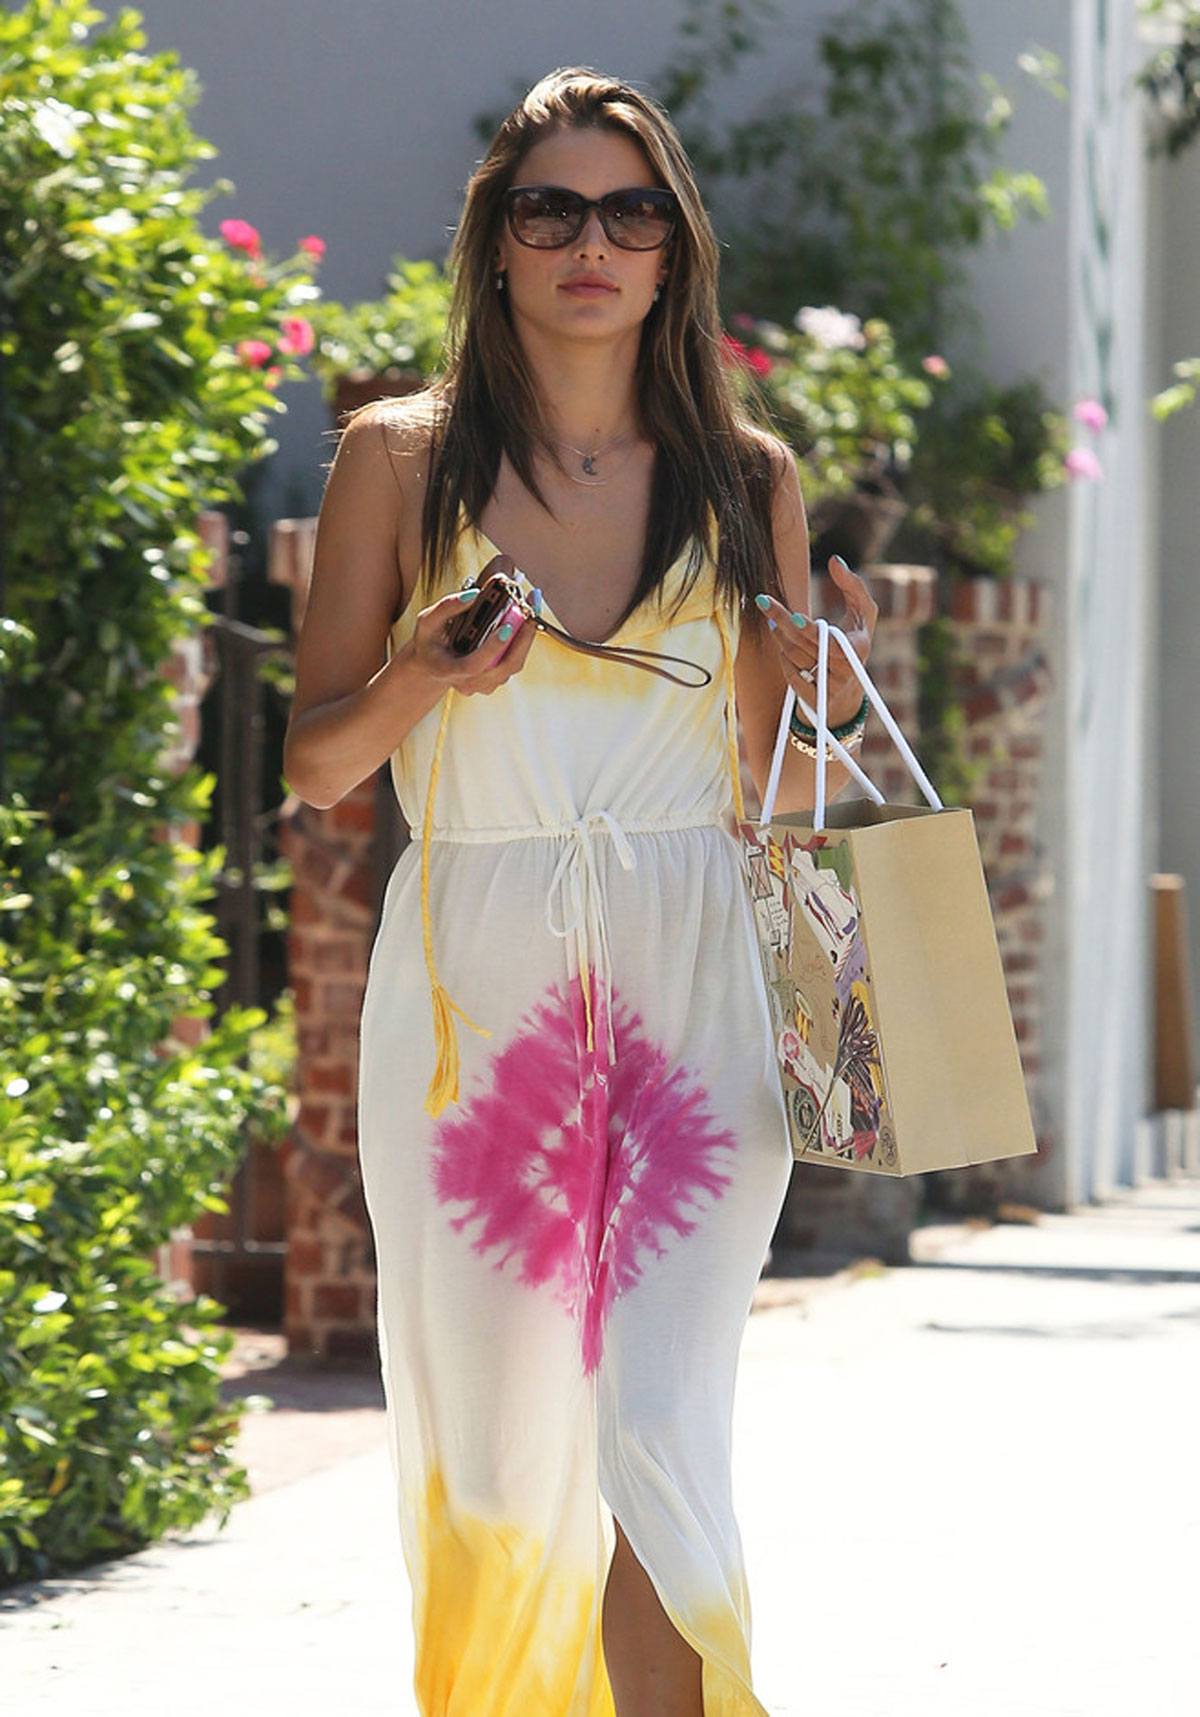 Molly sims archives page 2 of 7 hawtcelebs hawtcelebs - Alessandra Ambrosio In West Hollywood